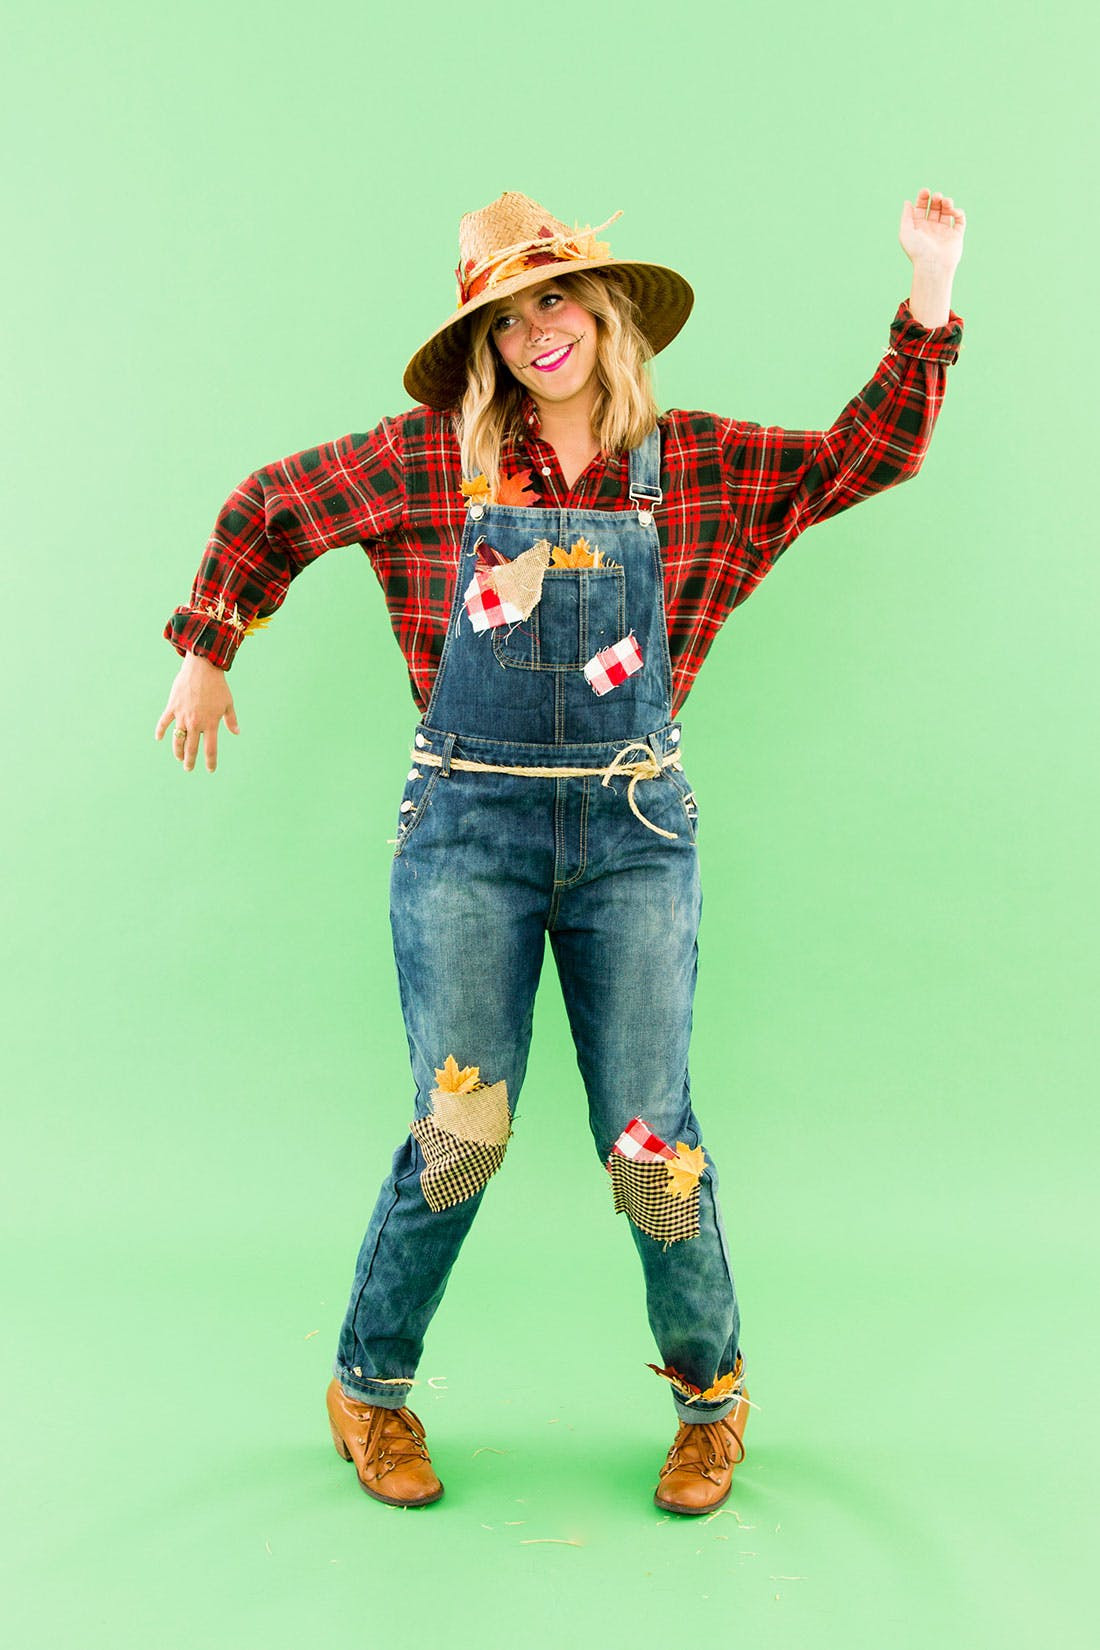 DIY Scarecrow Costume  DIY This Last Minute Scarecrow Costume With Pieces from